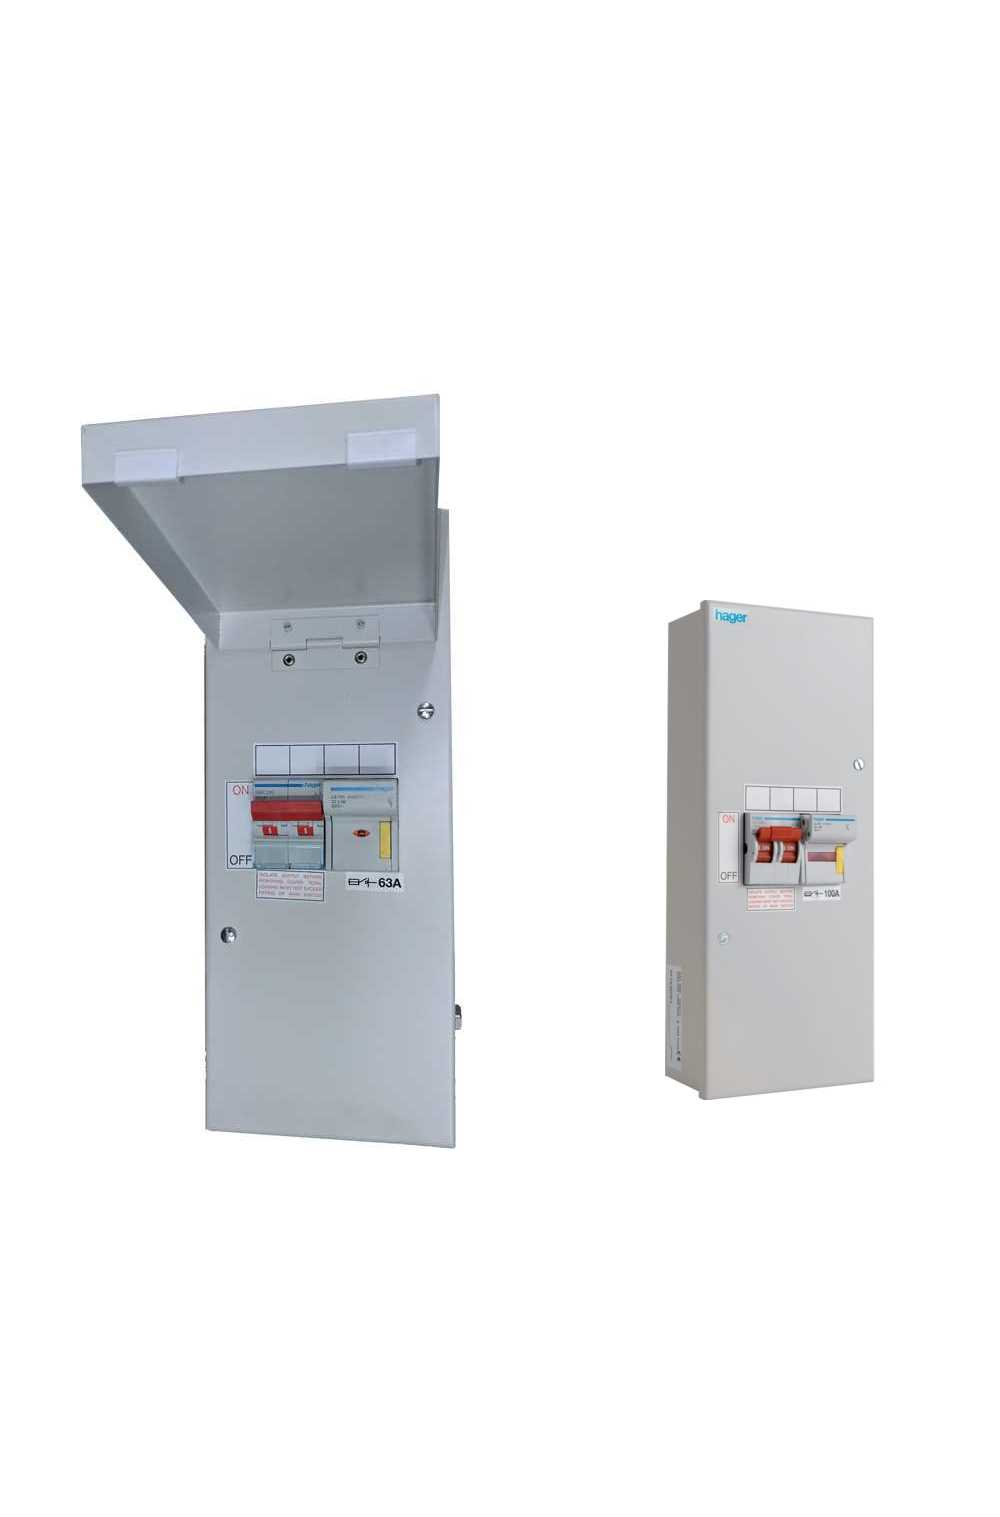 hight resolution of hager d10 enclosed switch fuses 63a 80a or 100a with or without door hager fuse box door